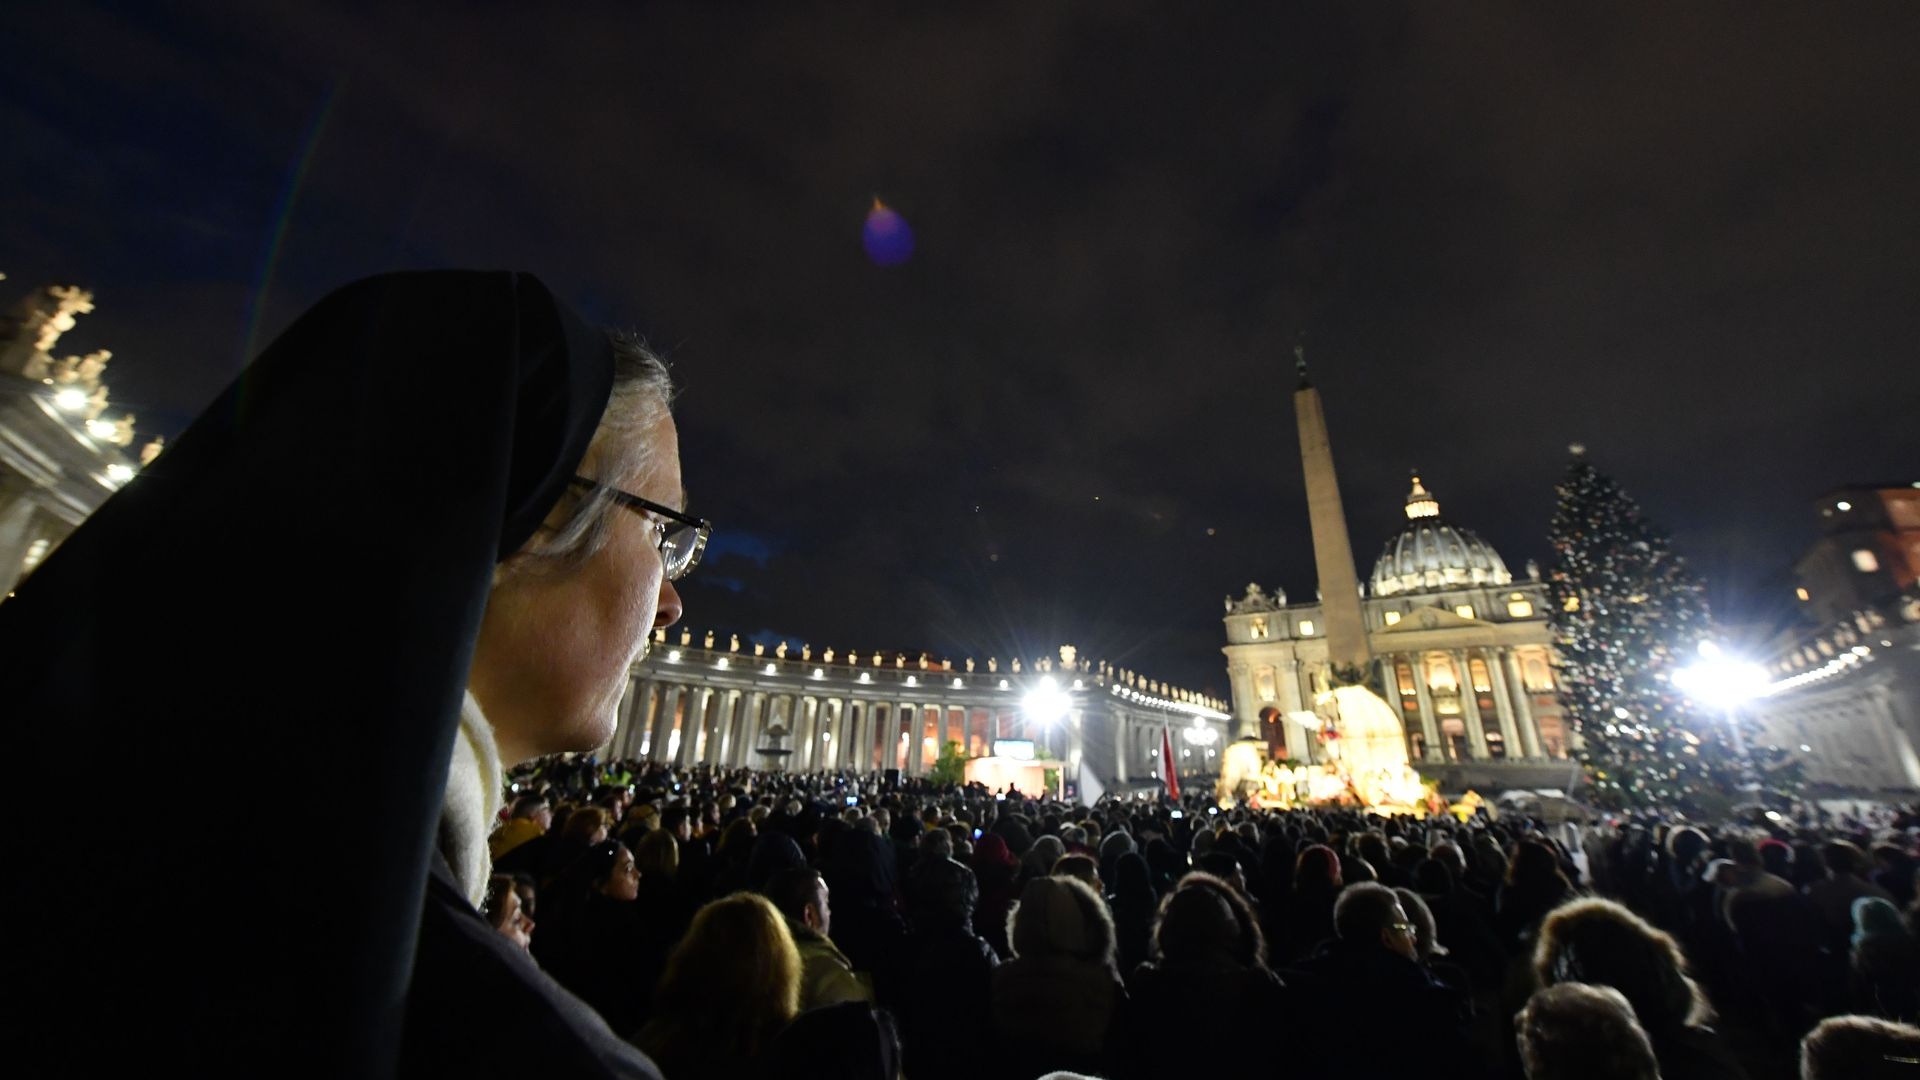 A nun in a crowd at the Vatican during Christmas.